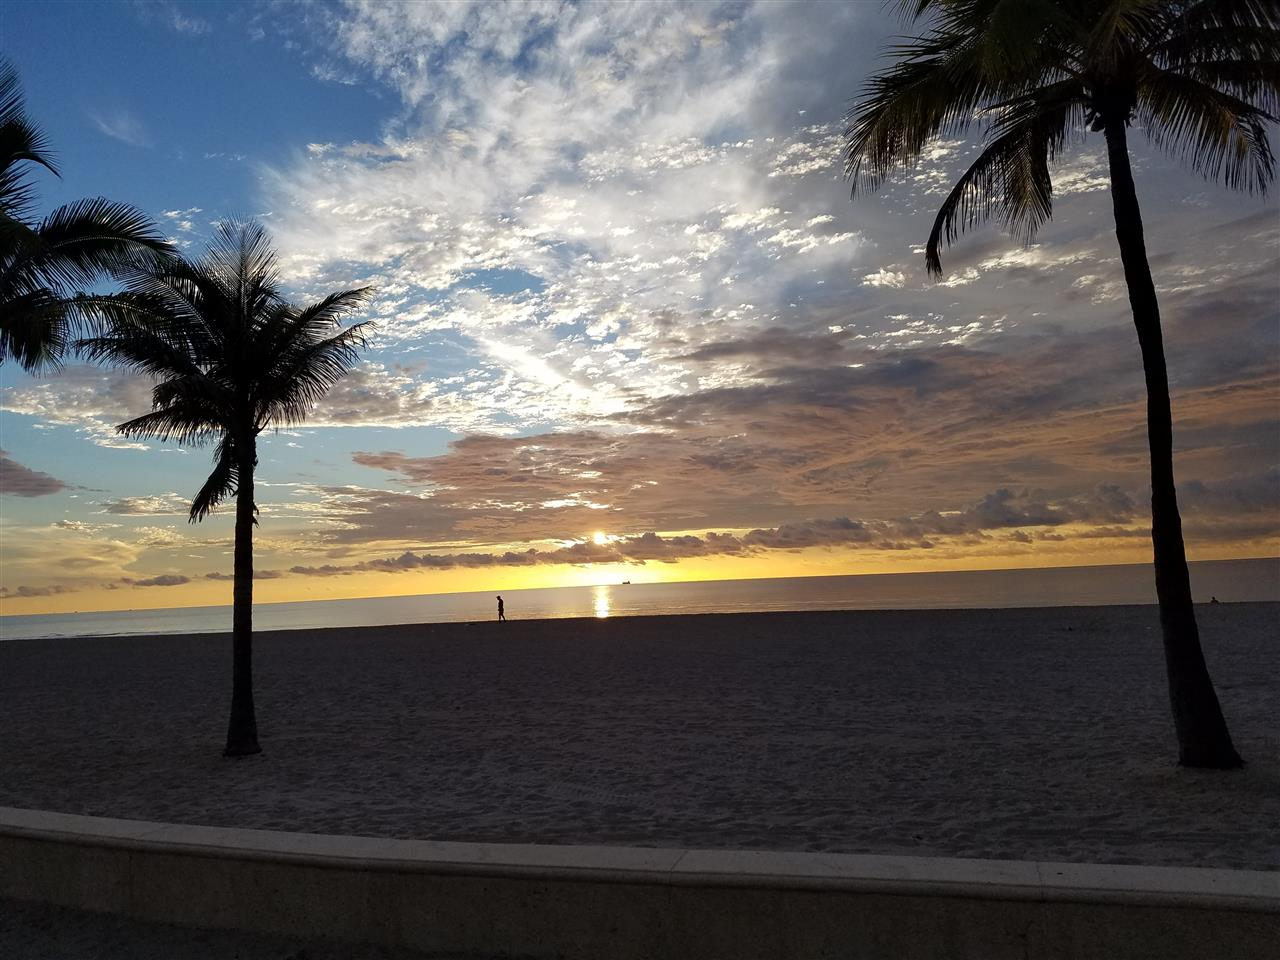 This is what it is like to live in Broward County by the Beach!